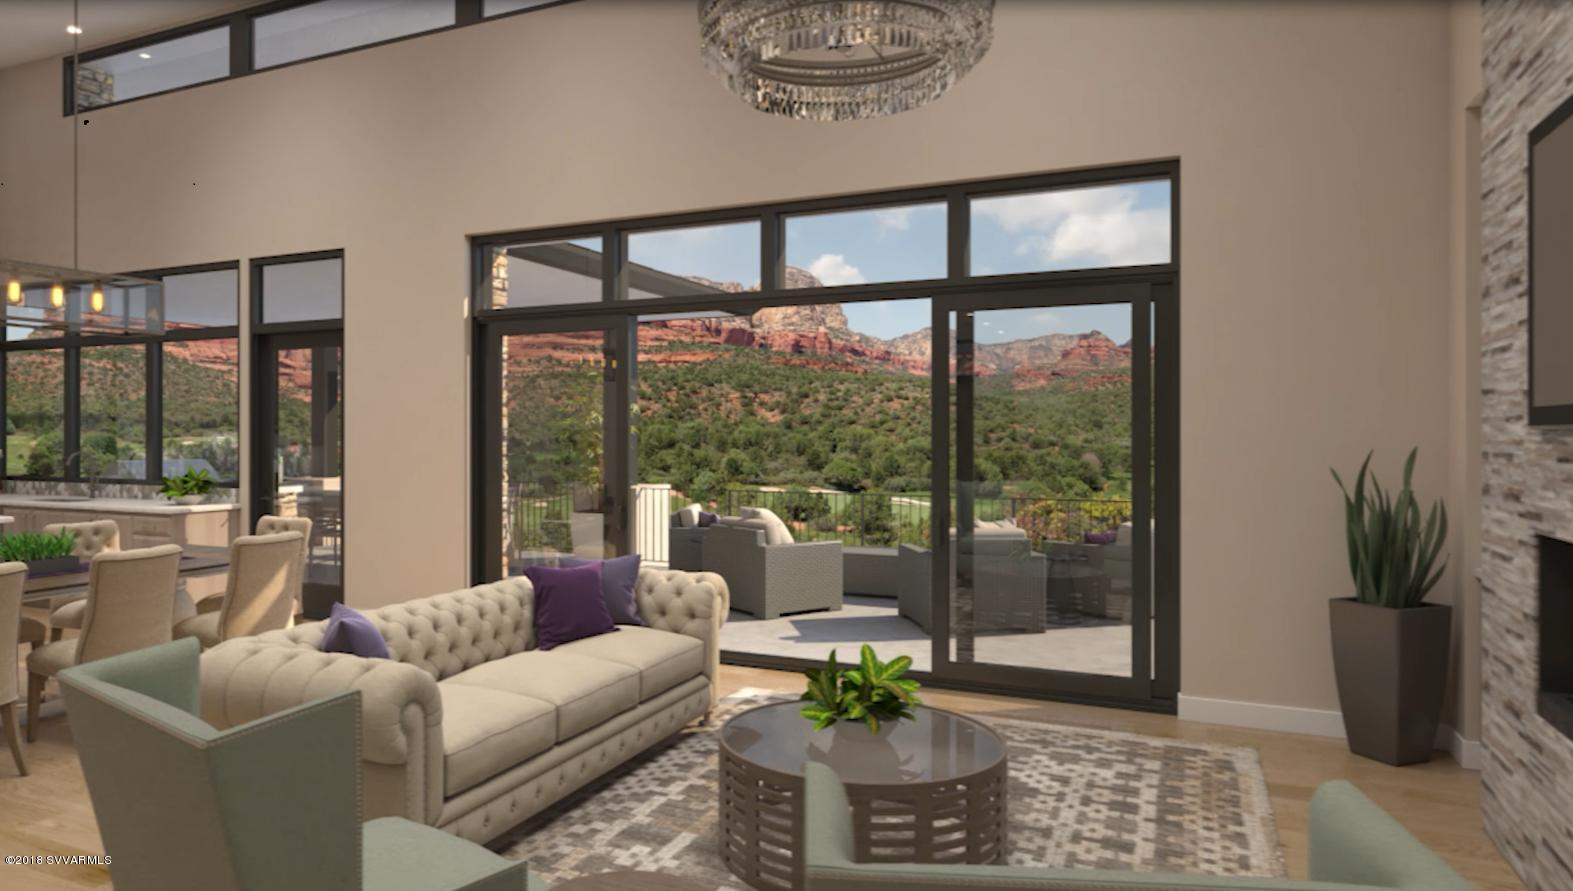 134 Lot 19 Fay Canyon Road Sedona, AZ 86336